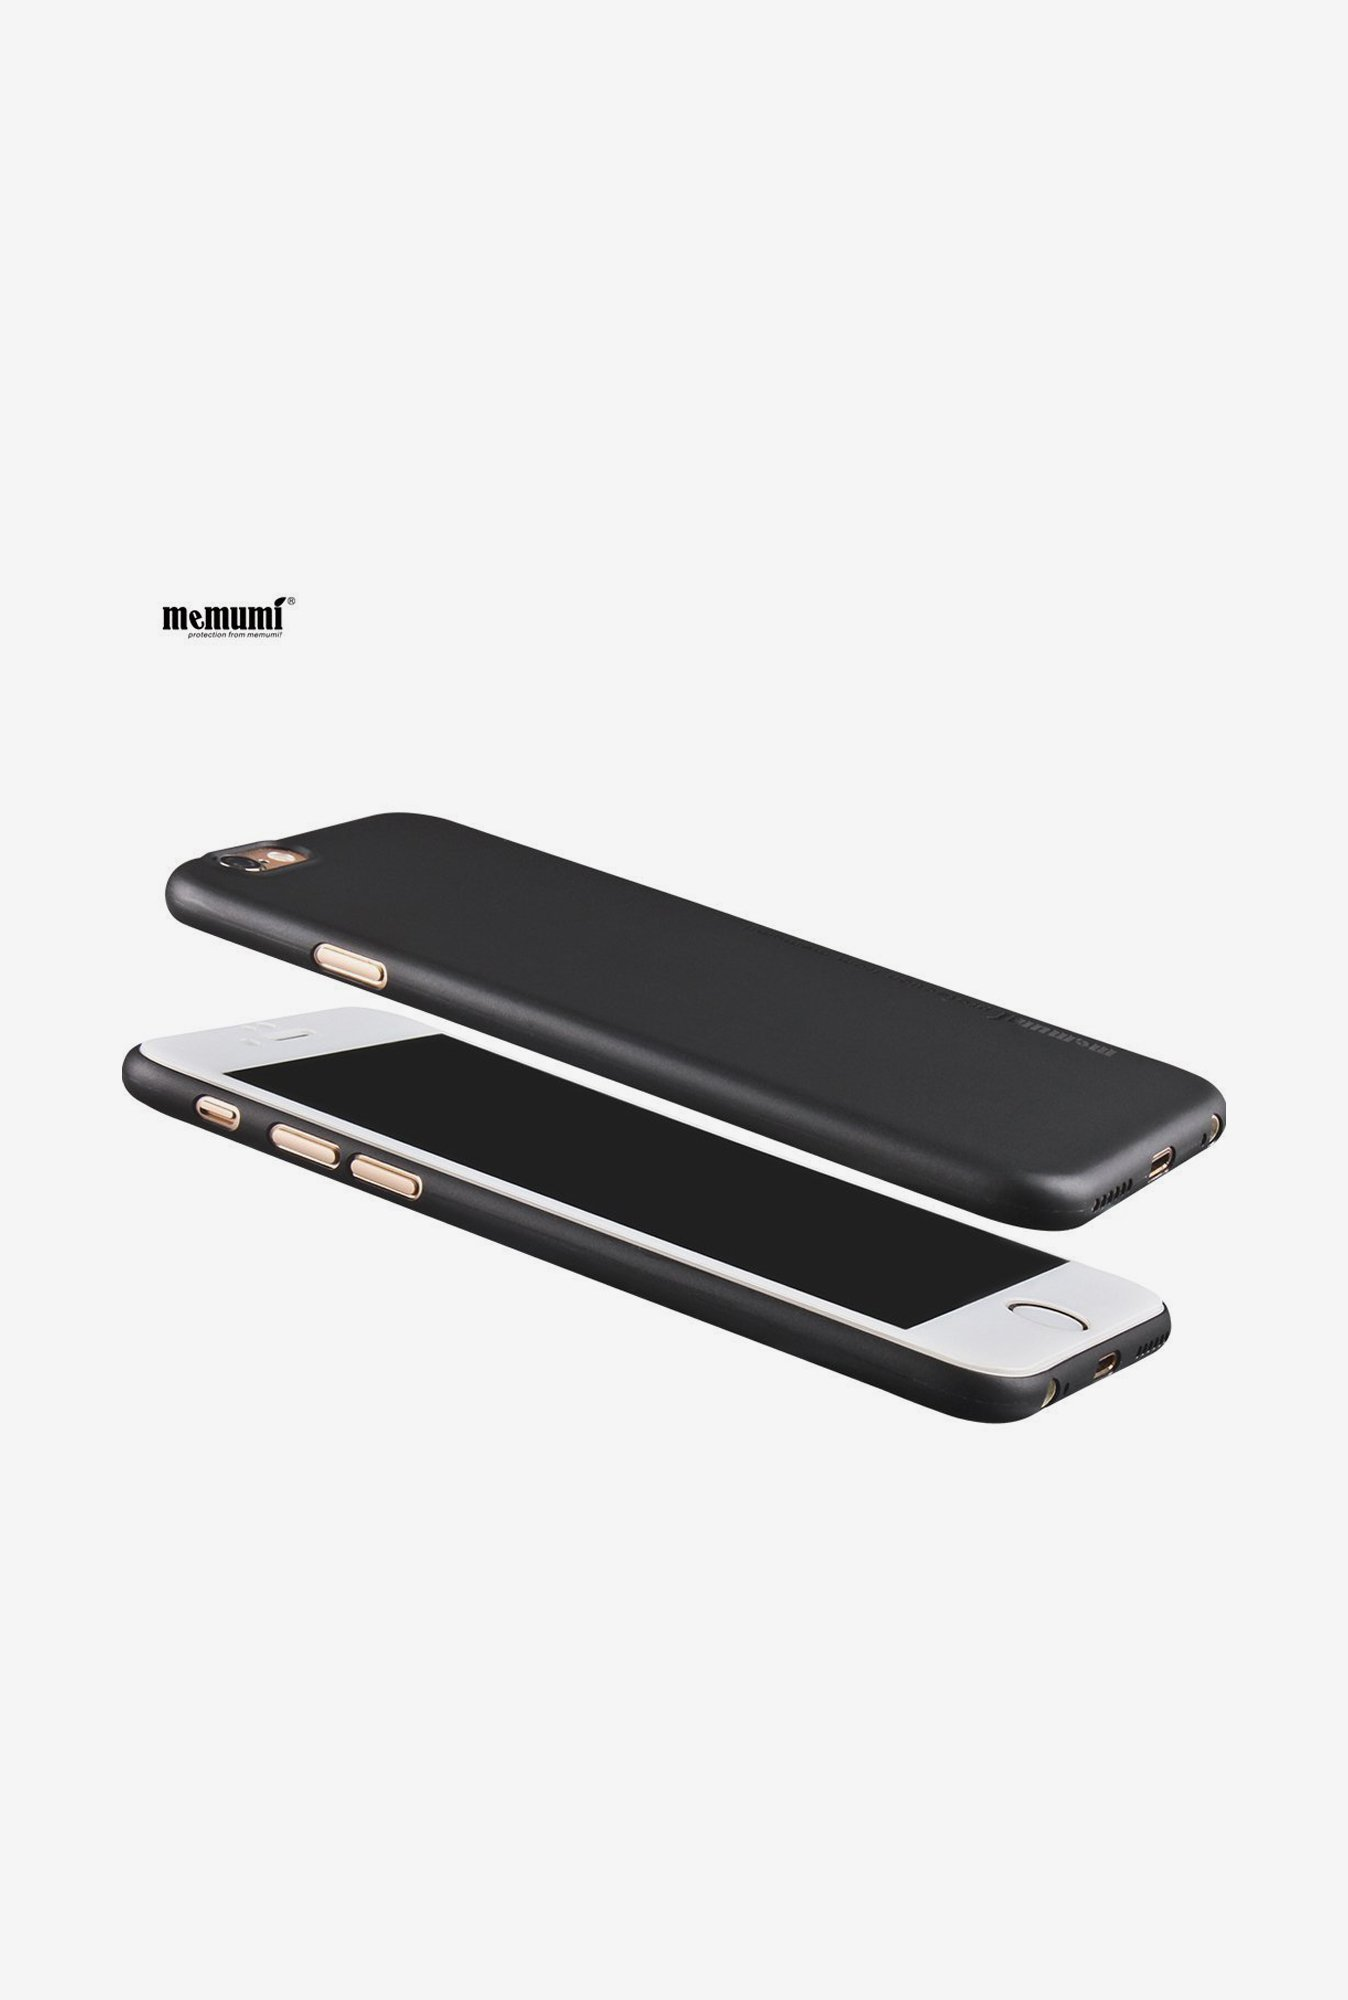 Memumi Ultra-Slim Back Cover for iPhone 6s Plus (Black)